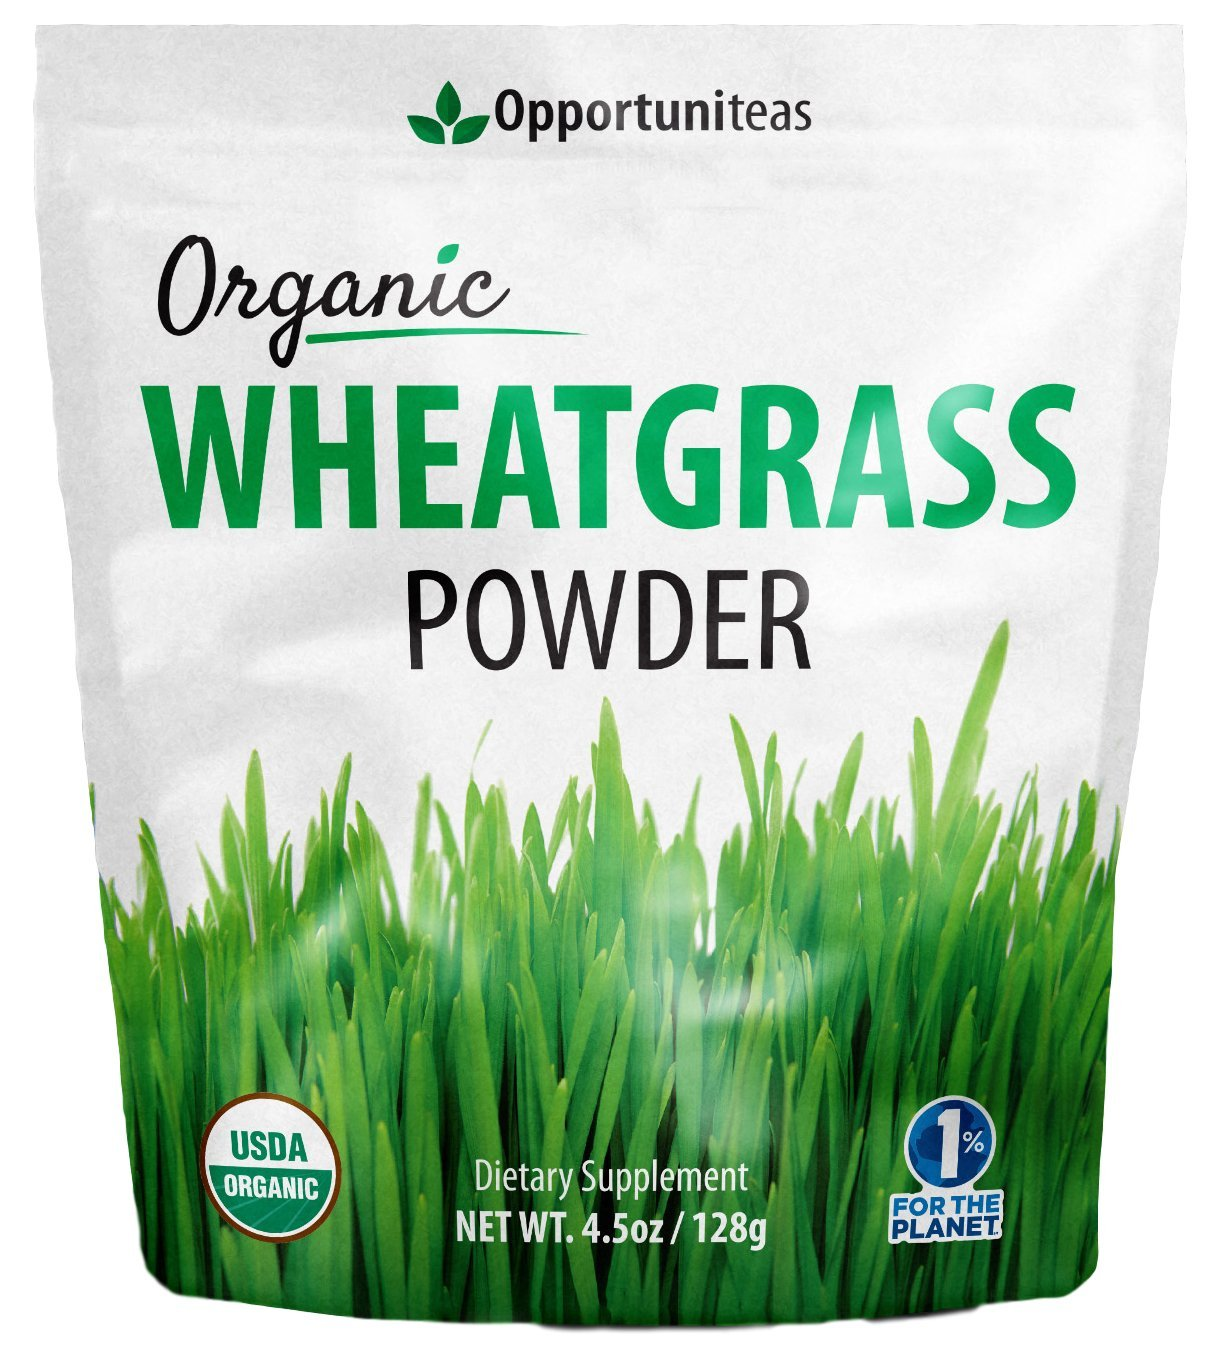 Organic Wheatgrass Powder - USA Grown, Raw, Vegan, Non-GMO - 100% Pure Green Grass Superfood Supplement - Amazing Healthy Boost for Juice, Recipe, or Smoothie - 4.5 oz